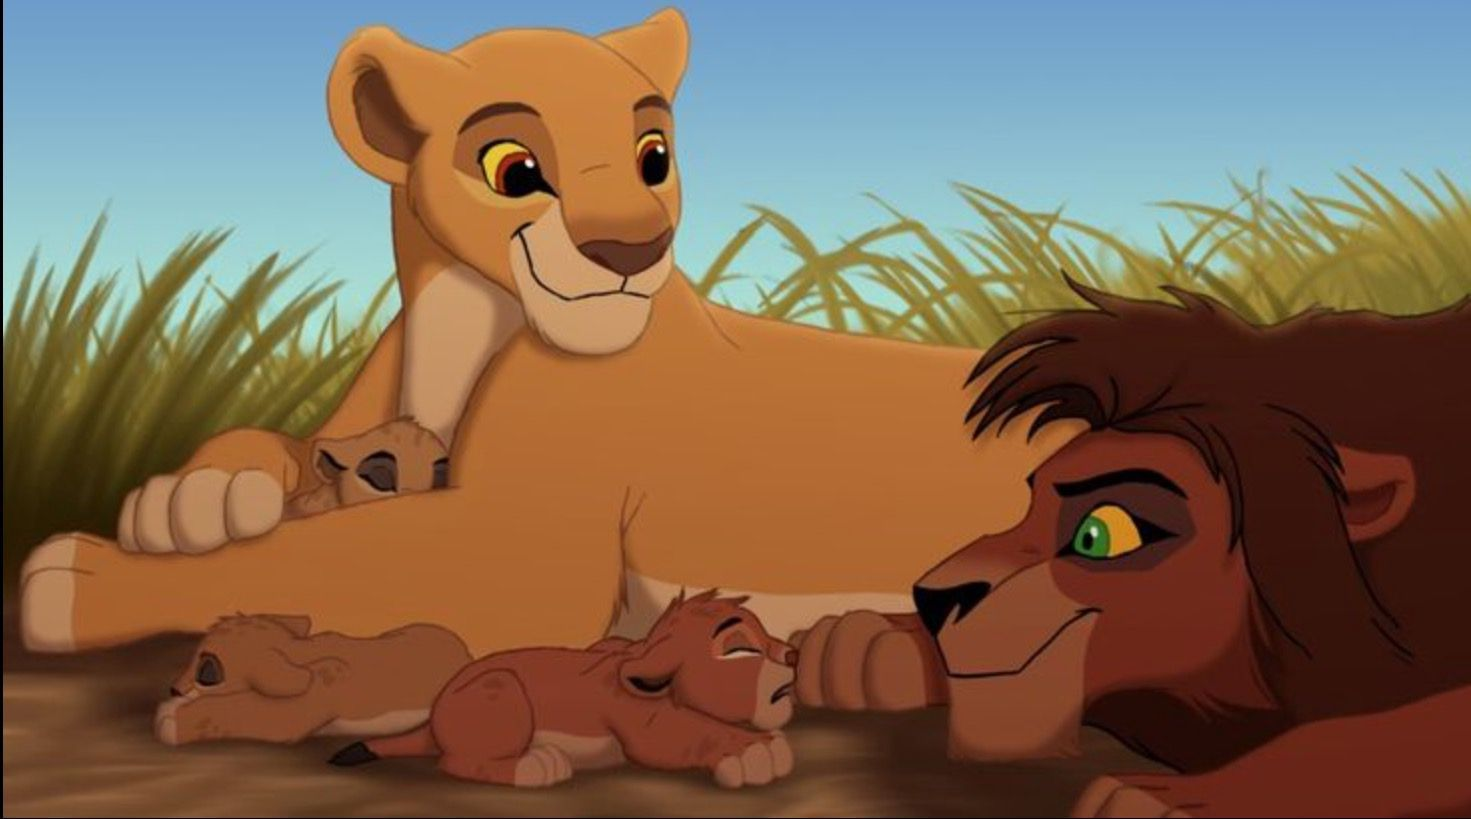 This Is Like My Other Lion King Story Called Zira S Life Story But Th Fanfiction Fanfiction Amreading Bo Lion King Pictures Lion King Art Lion King Fan Art